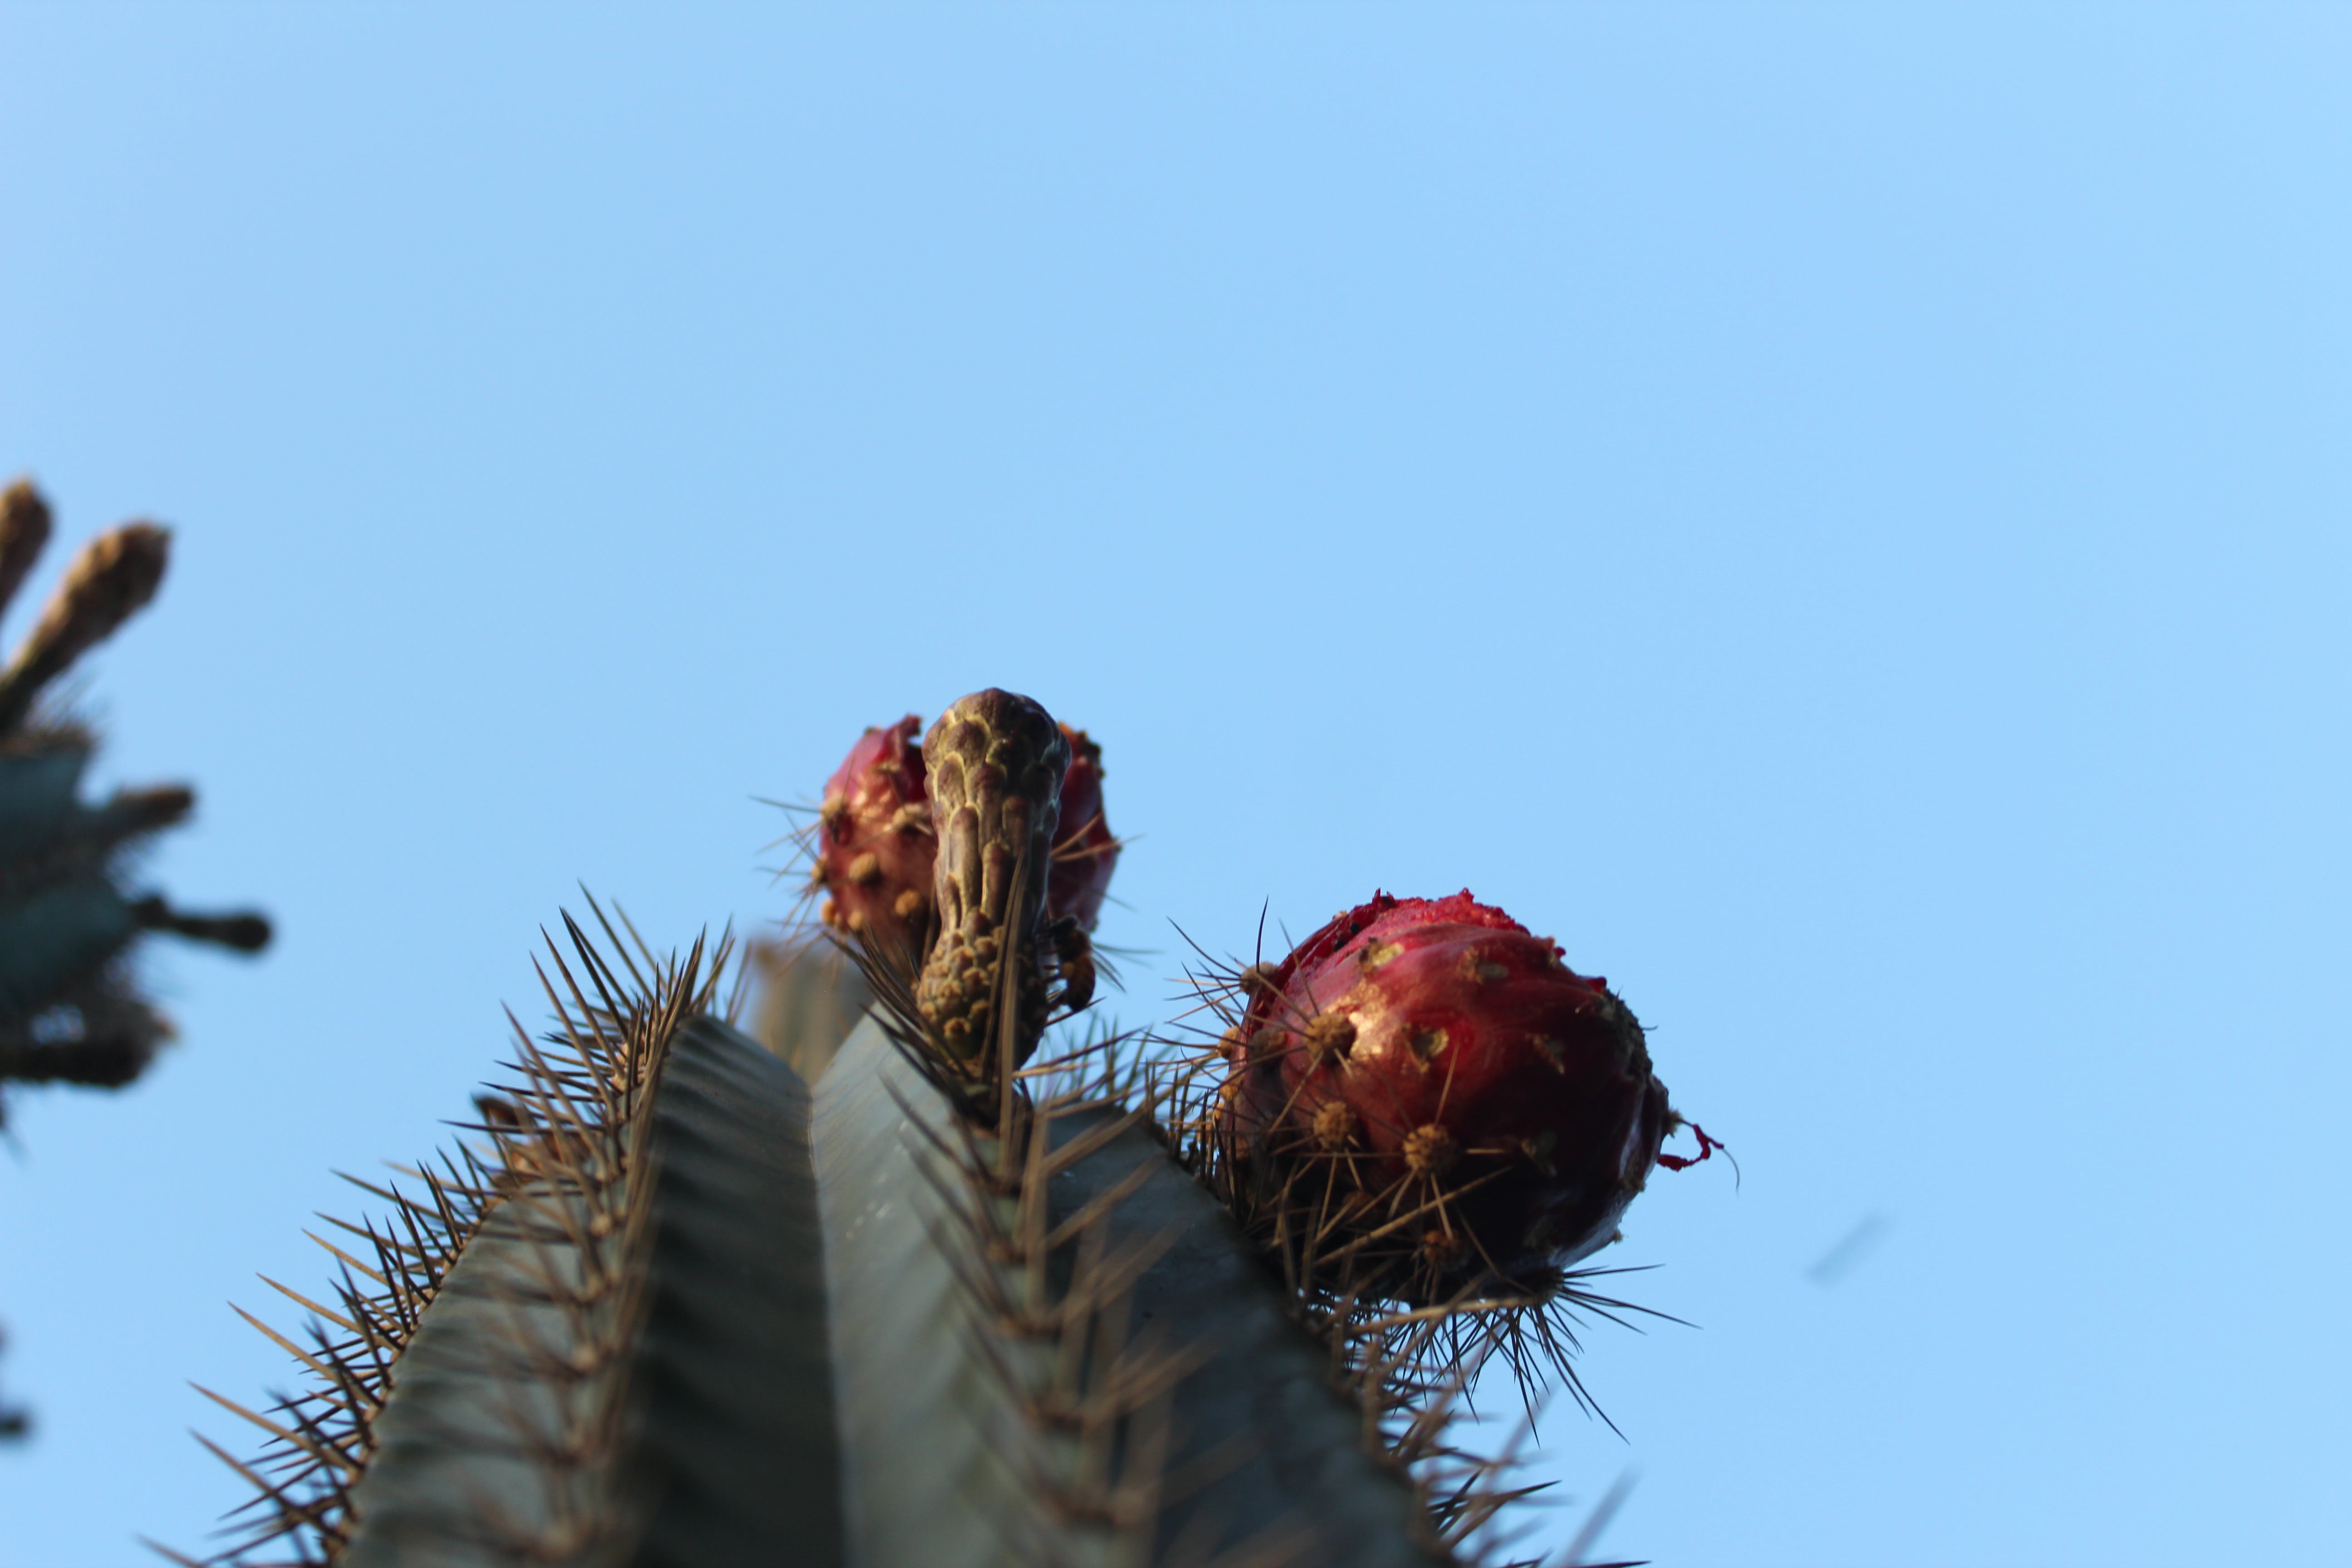 Free stock photo of cacti, cactusvruchten, Pickley pear